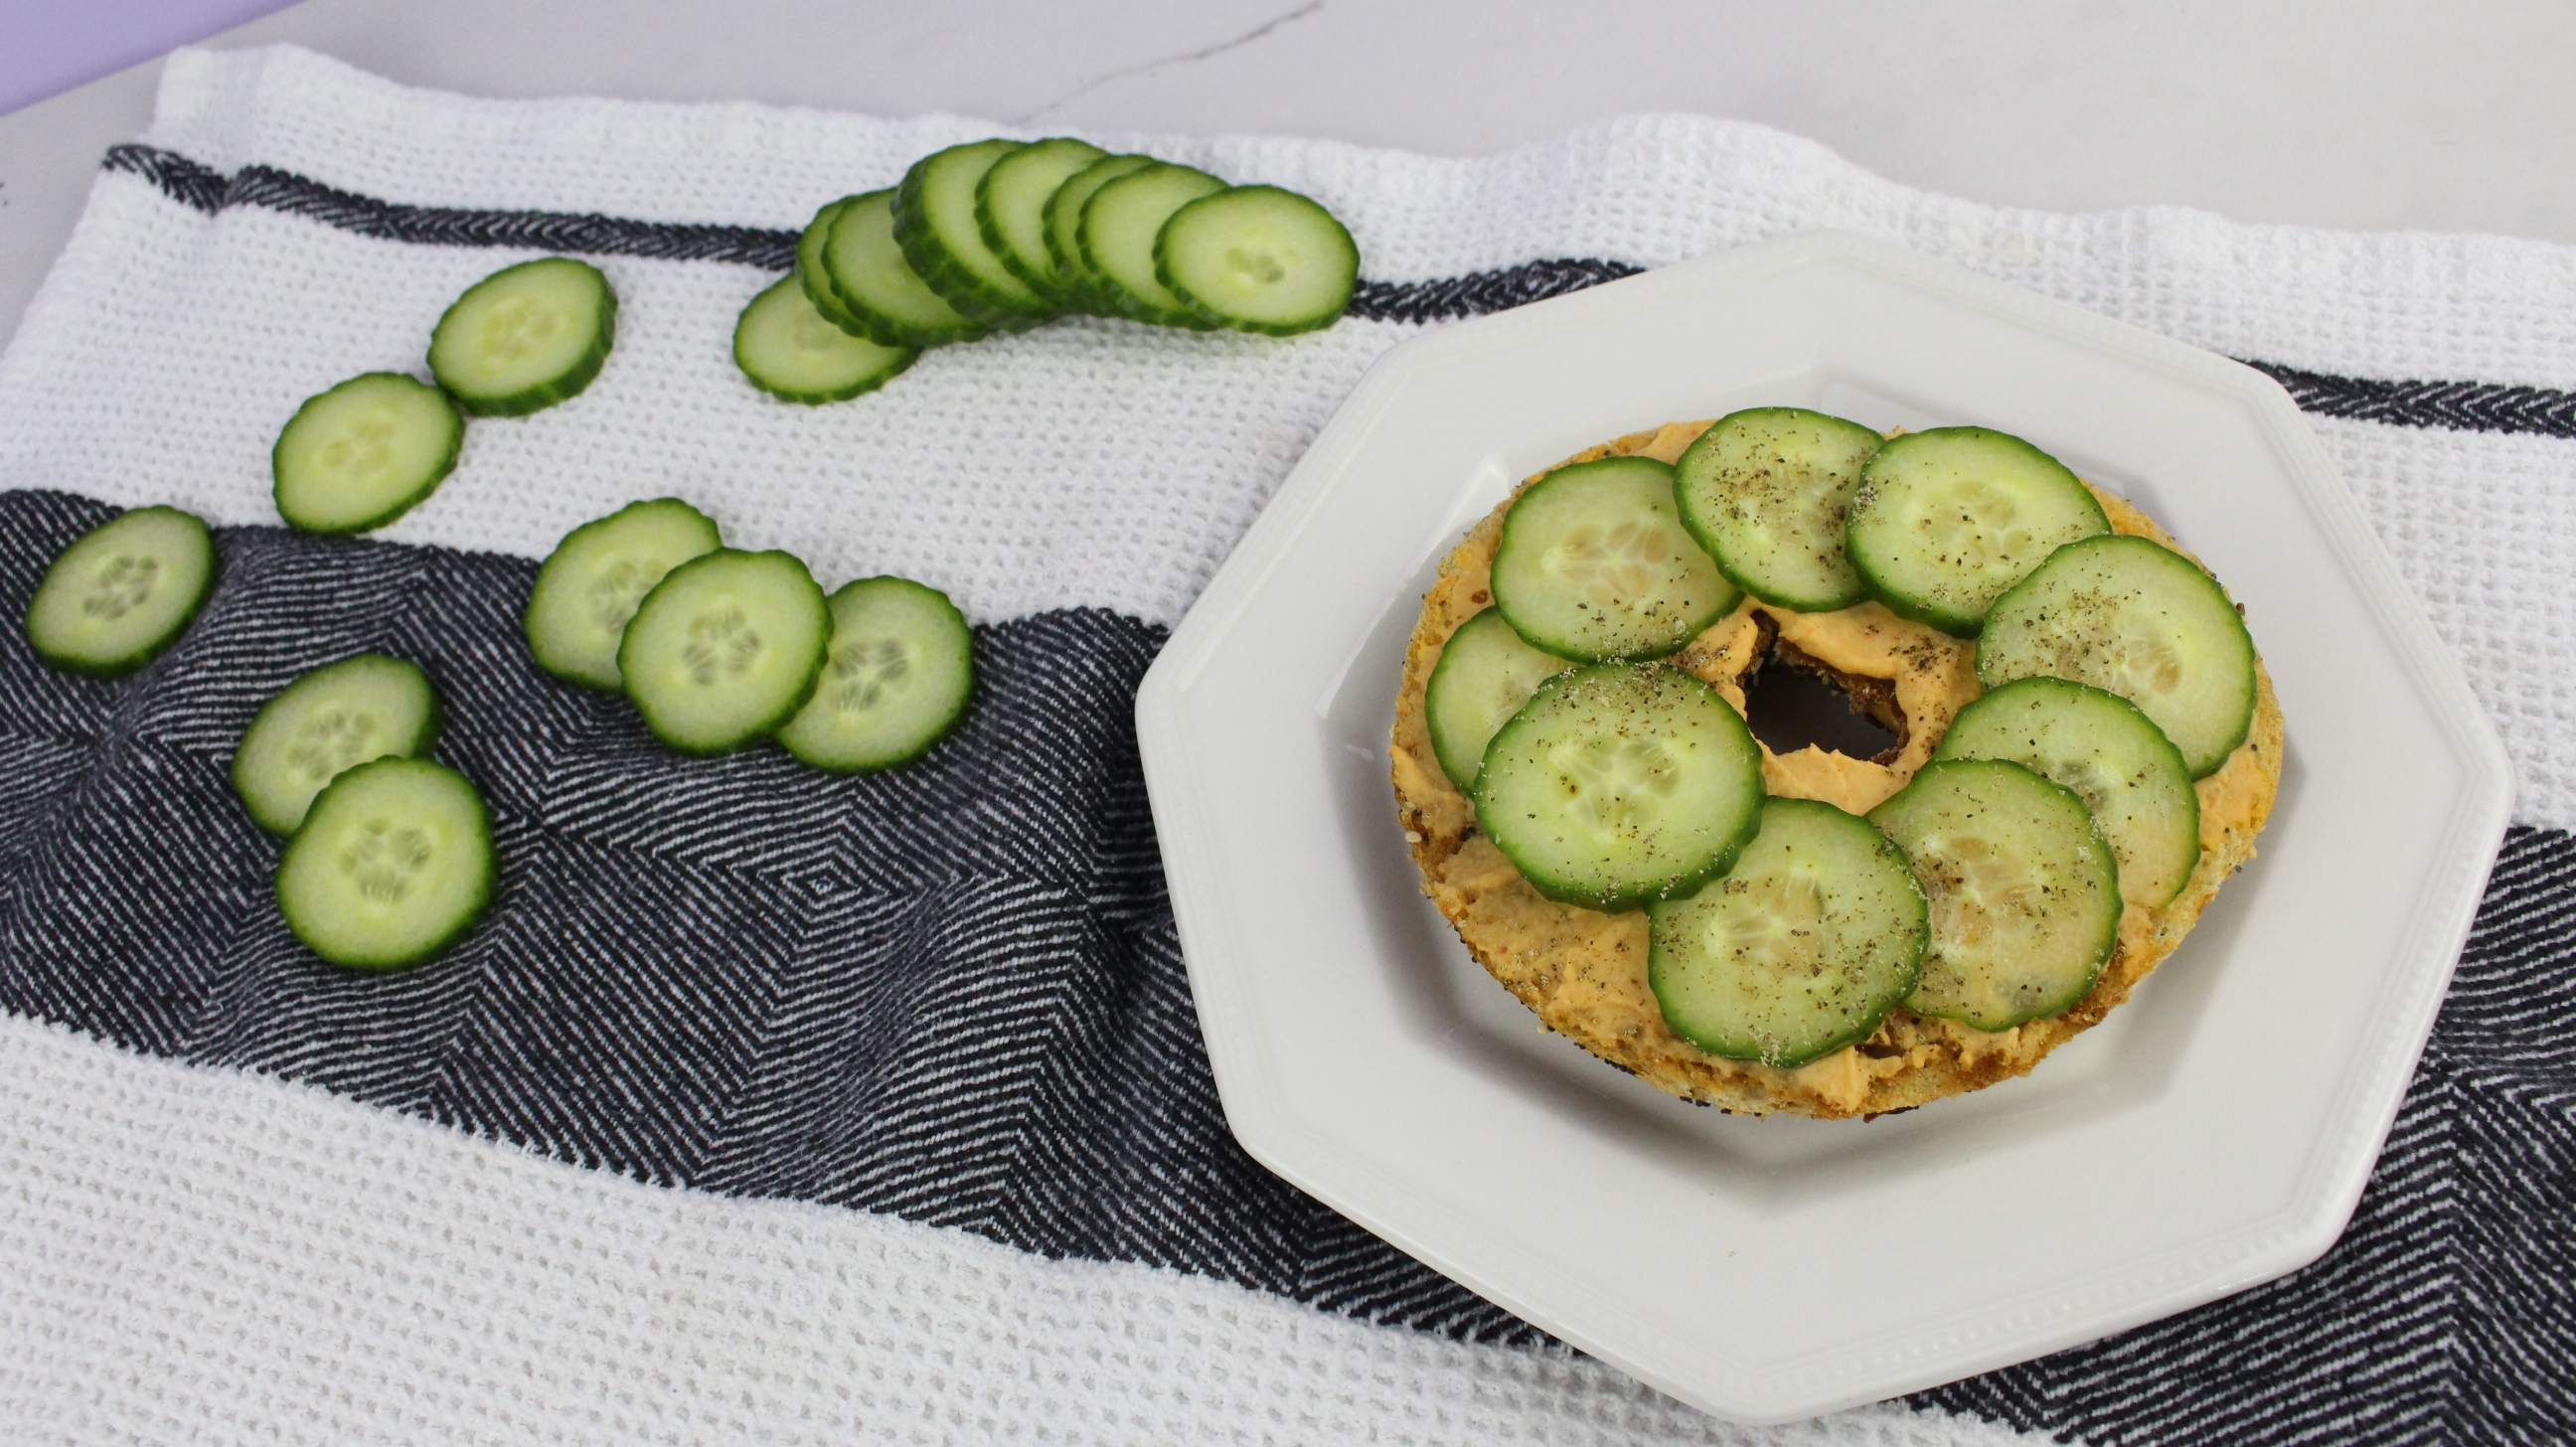 Cucumber and Hummus - 15 Ways to Top Your Breakfast Bagel - Happy Stylish Fit